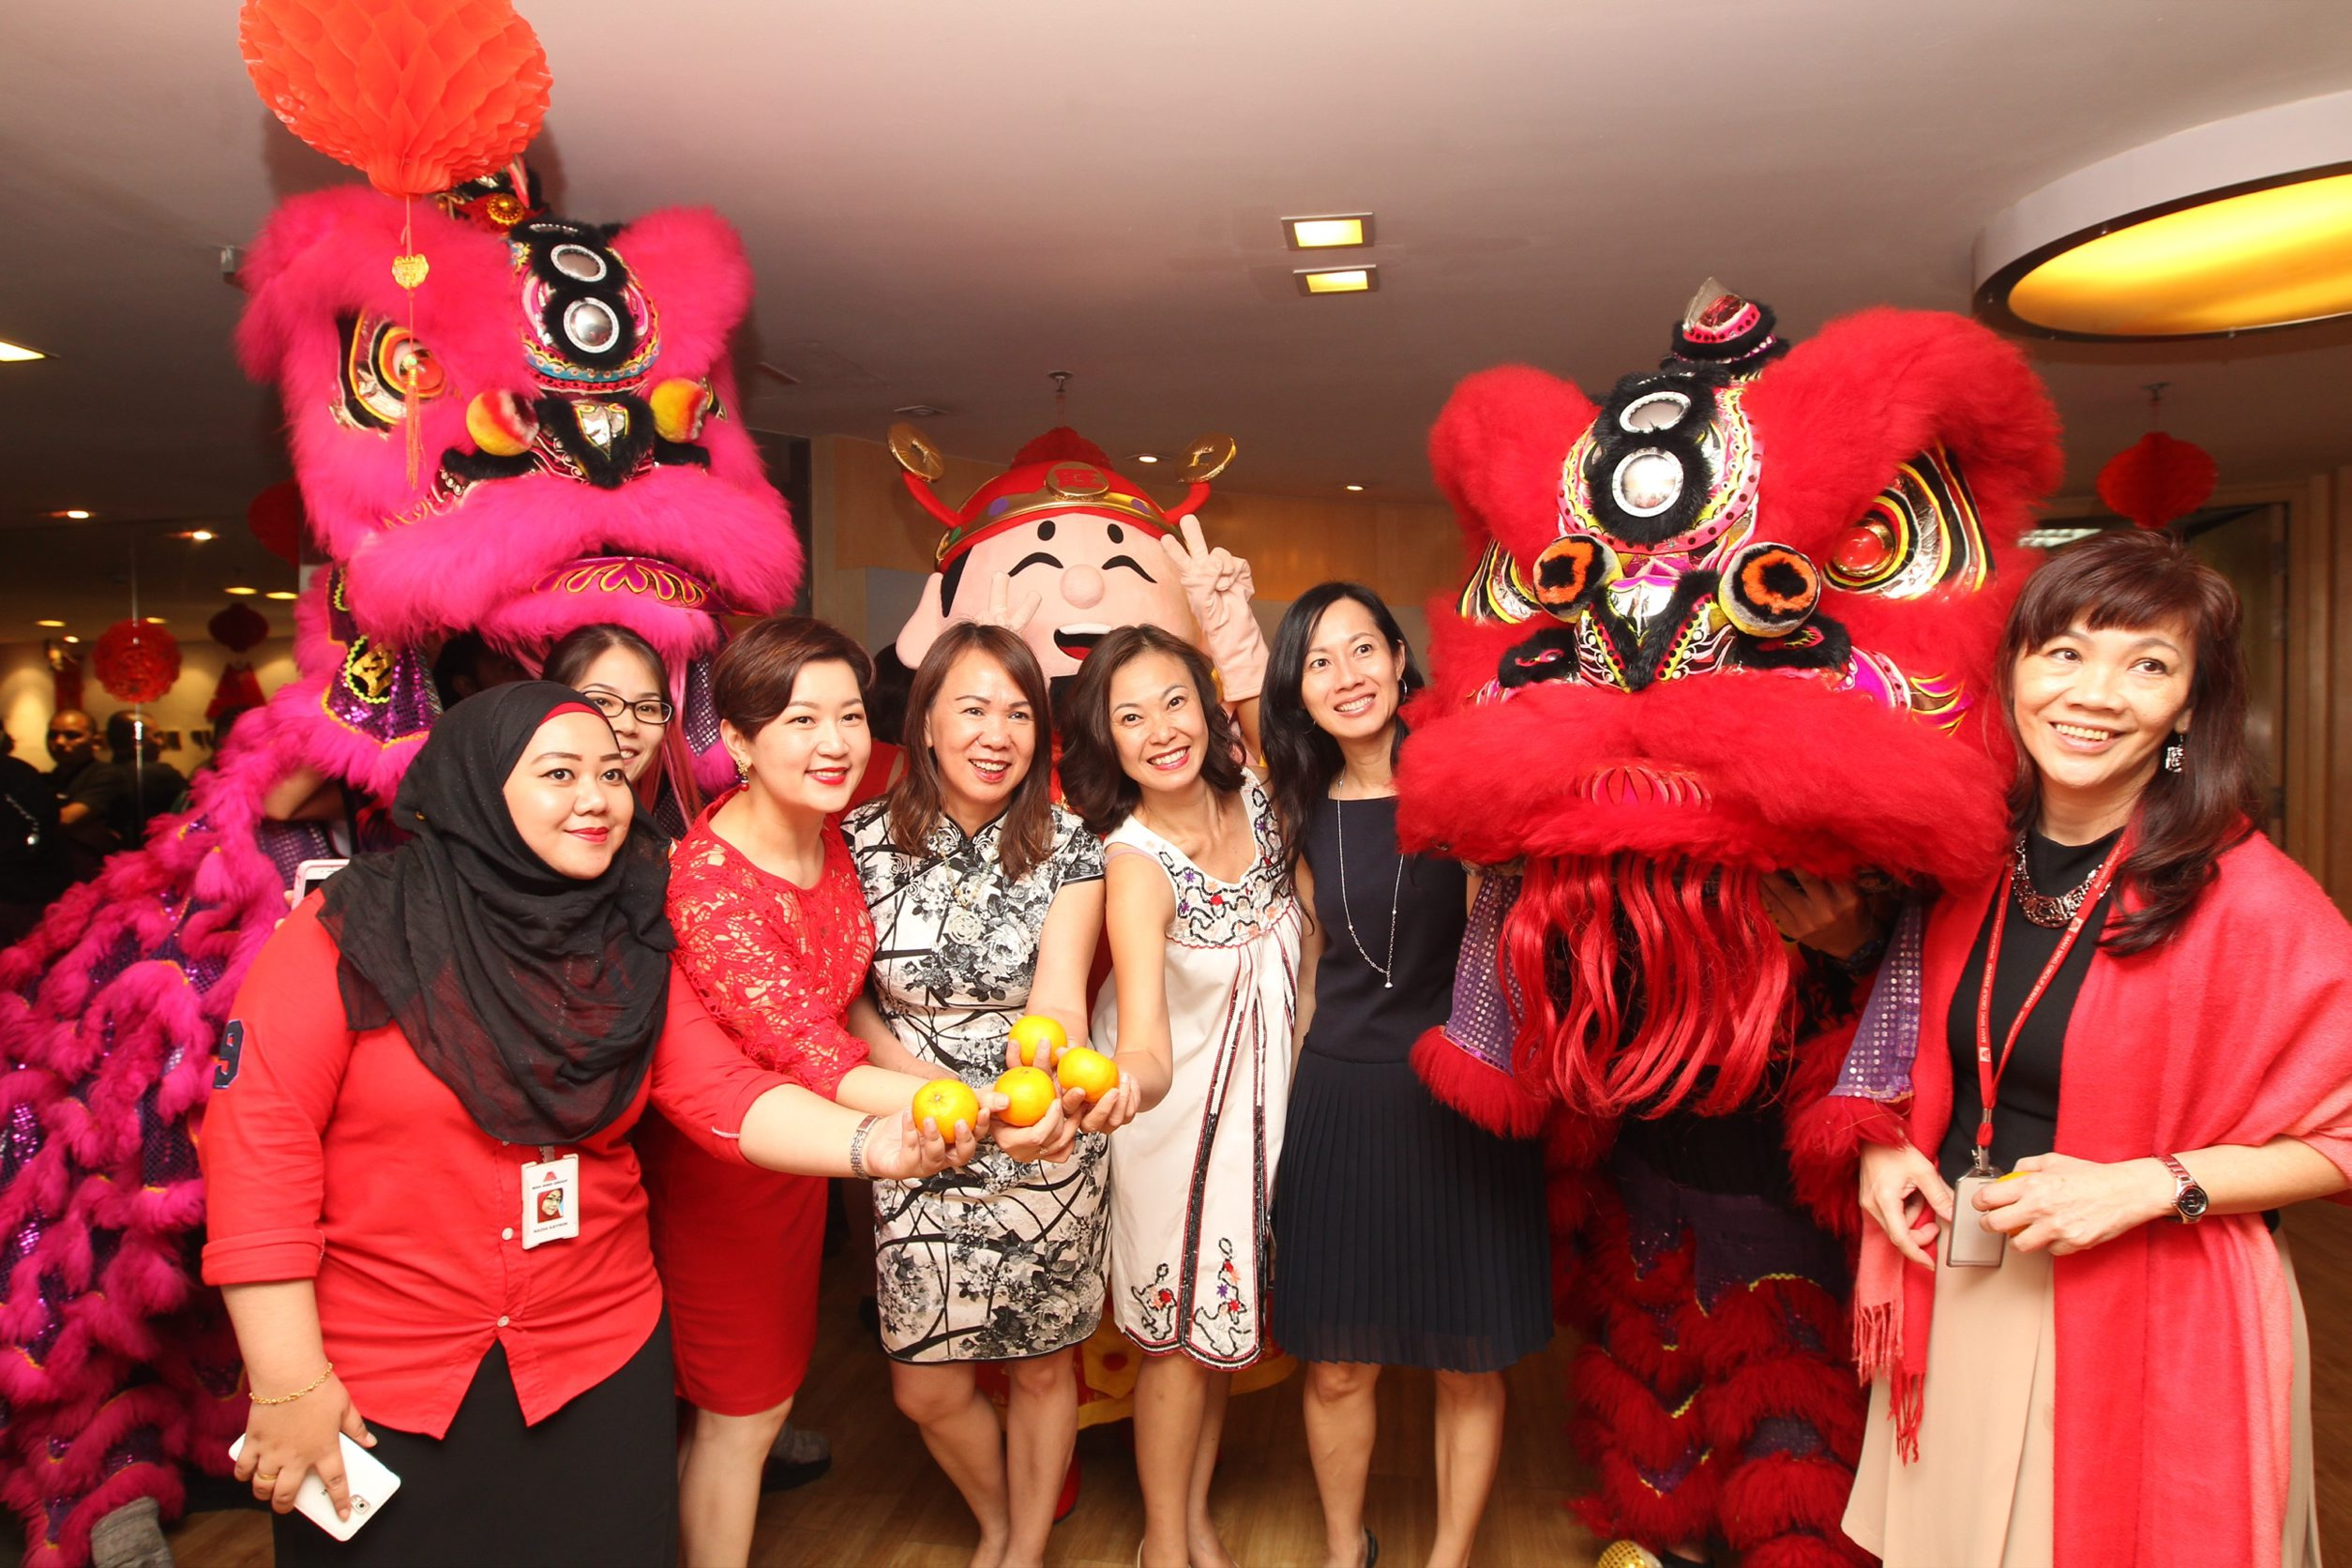 Mah Sing staff members posing for a photo with the lions during the Star Media Group visit to usher in the Year of the Rooster together.